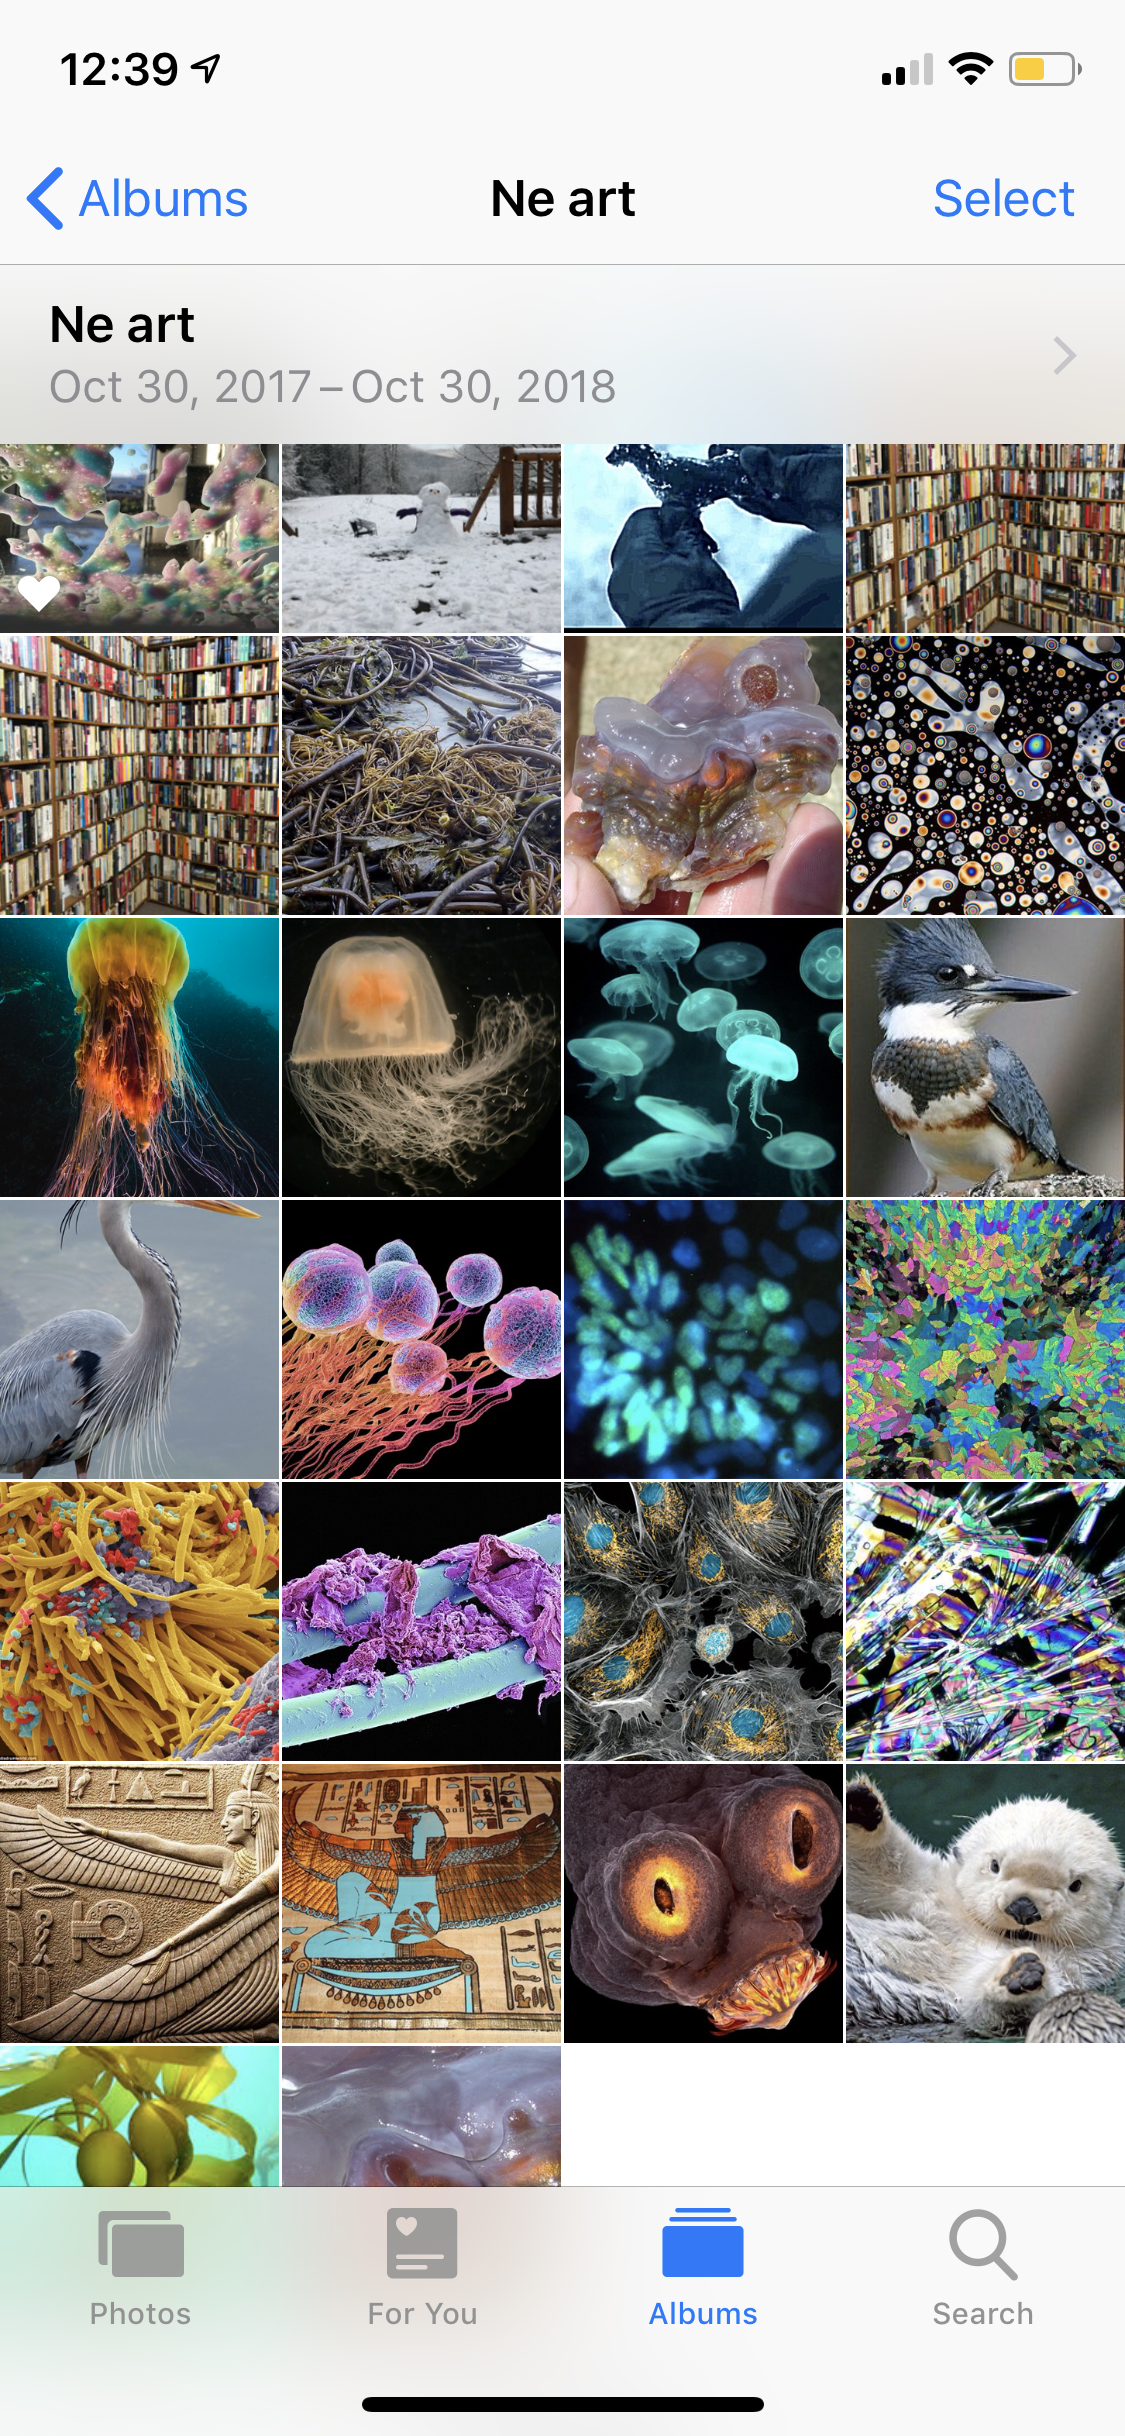 I'll probably start with the snowman, then GoT scene, books, wildlife, seaweed/jellyfish, and then microscope photography.